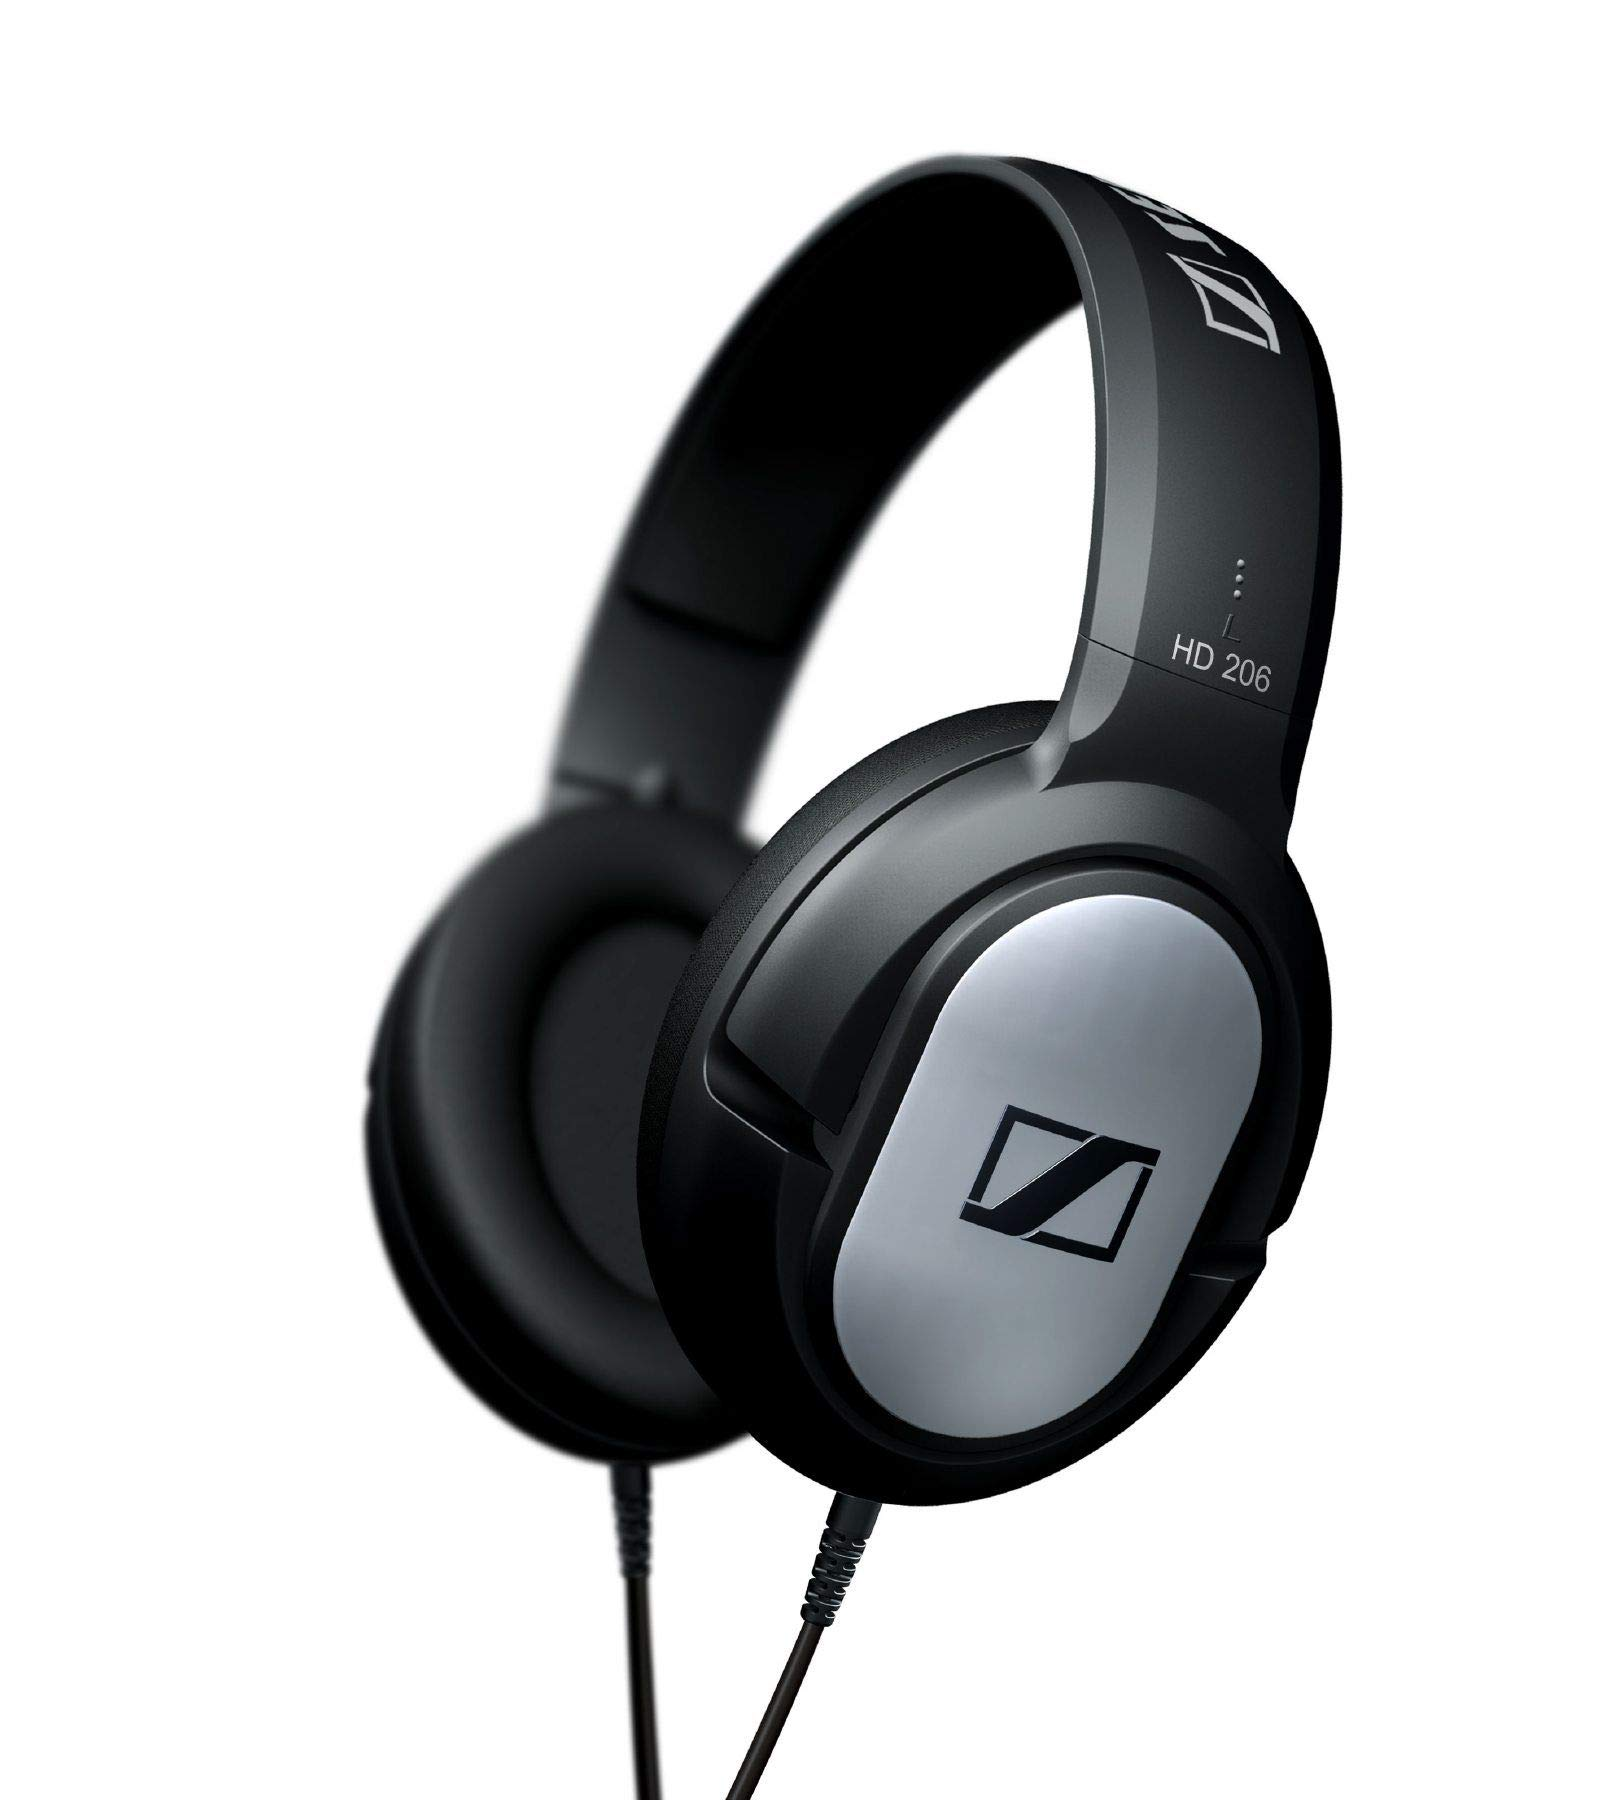 Sennheiser HD 206 - Auriculares estéreo, Color Plata product image